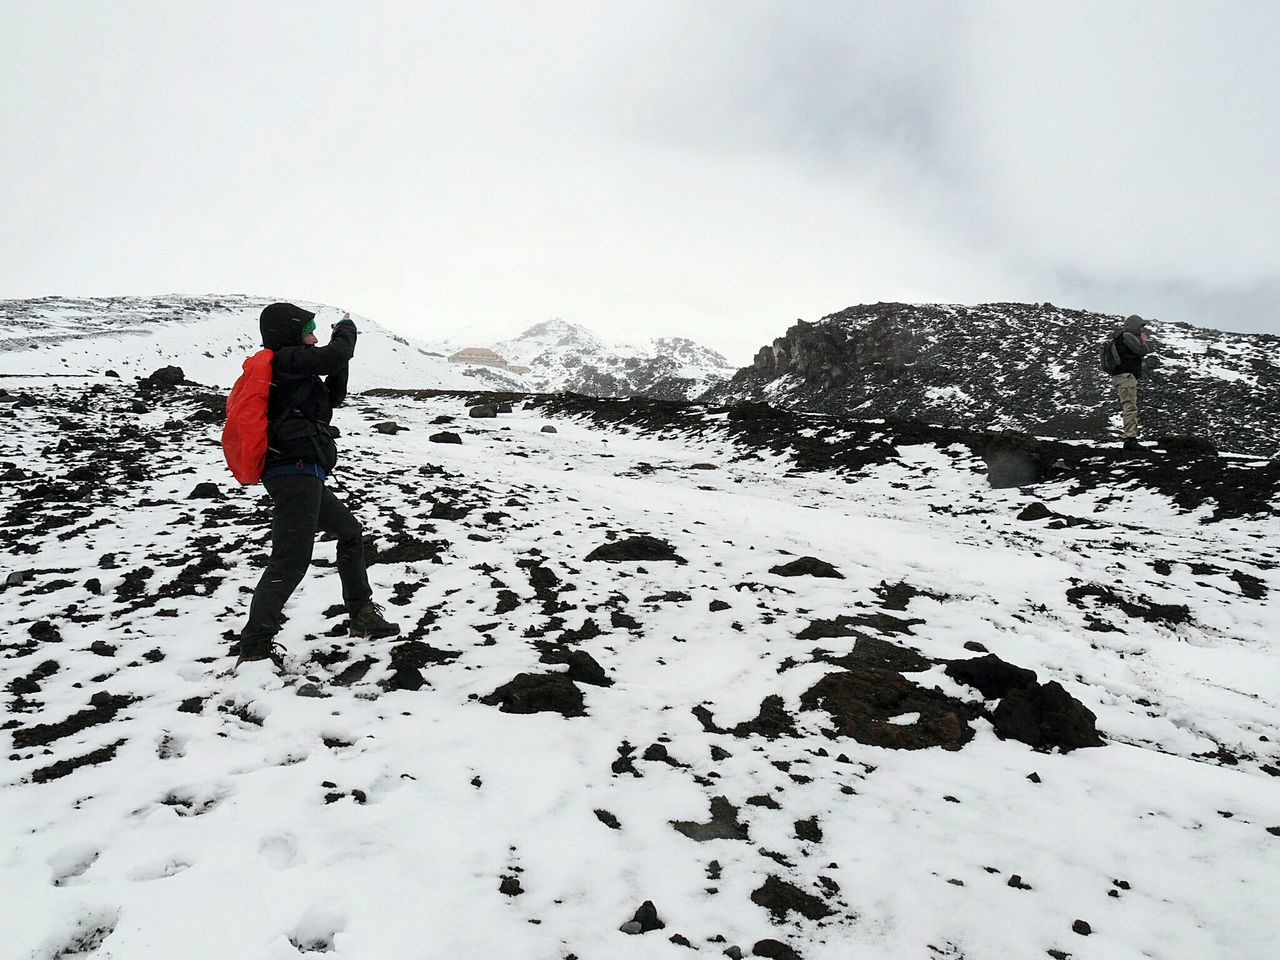 Side View Of Person With Red Backpack Walking On Snowy Mountain At Cotopaxi National Park